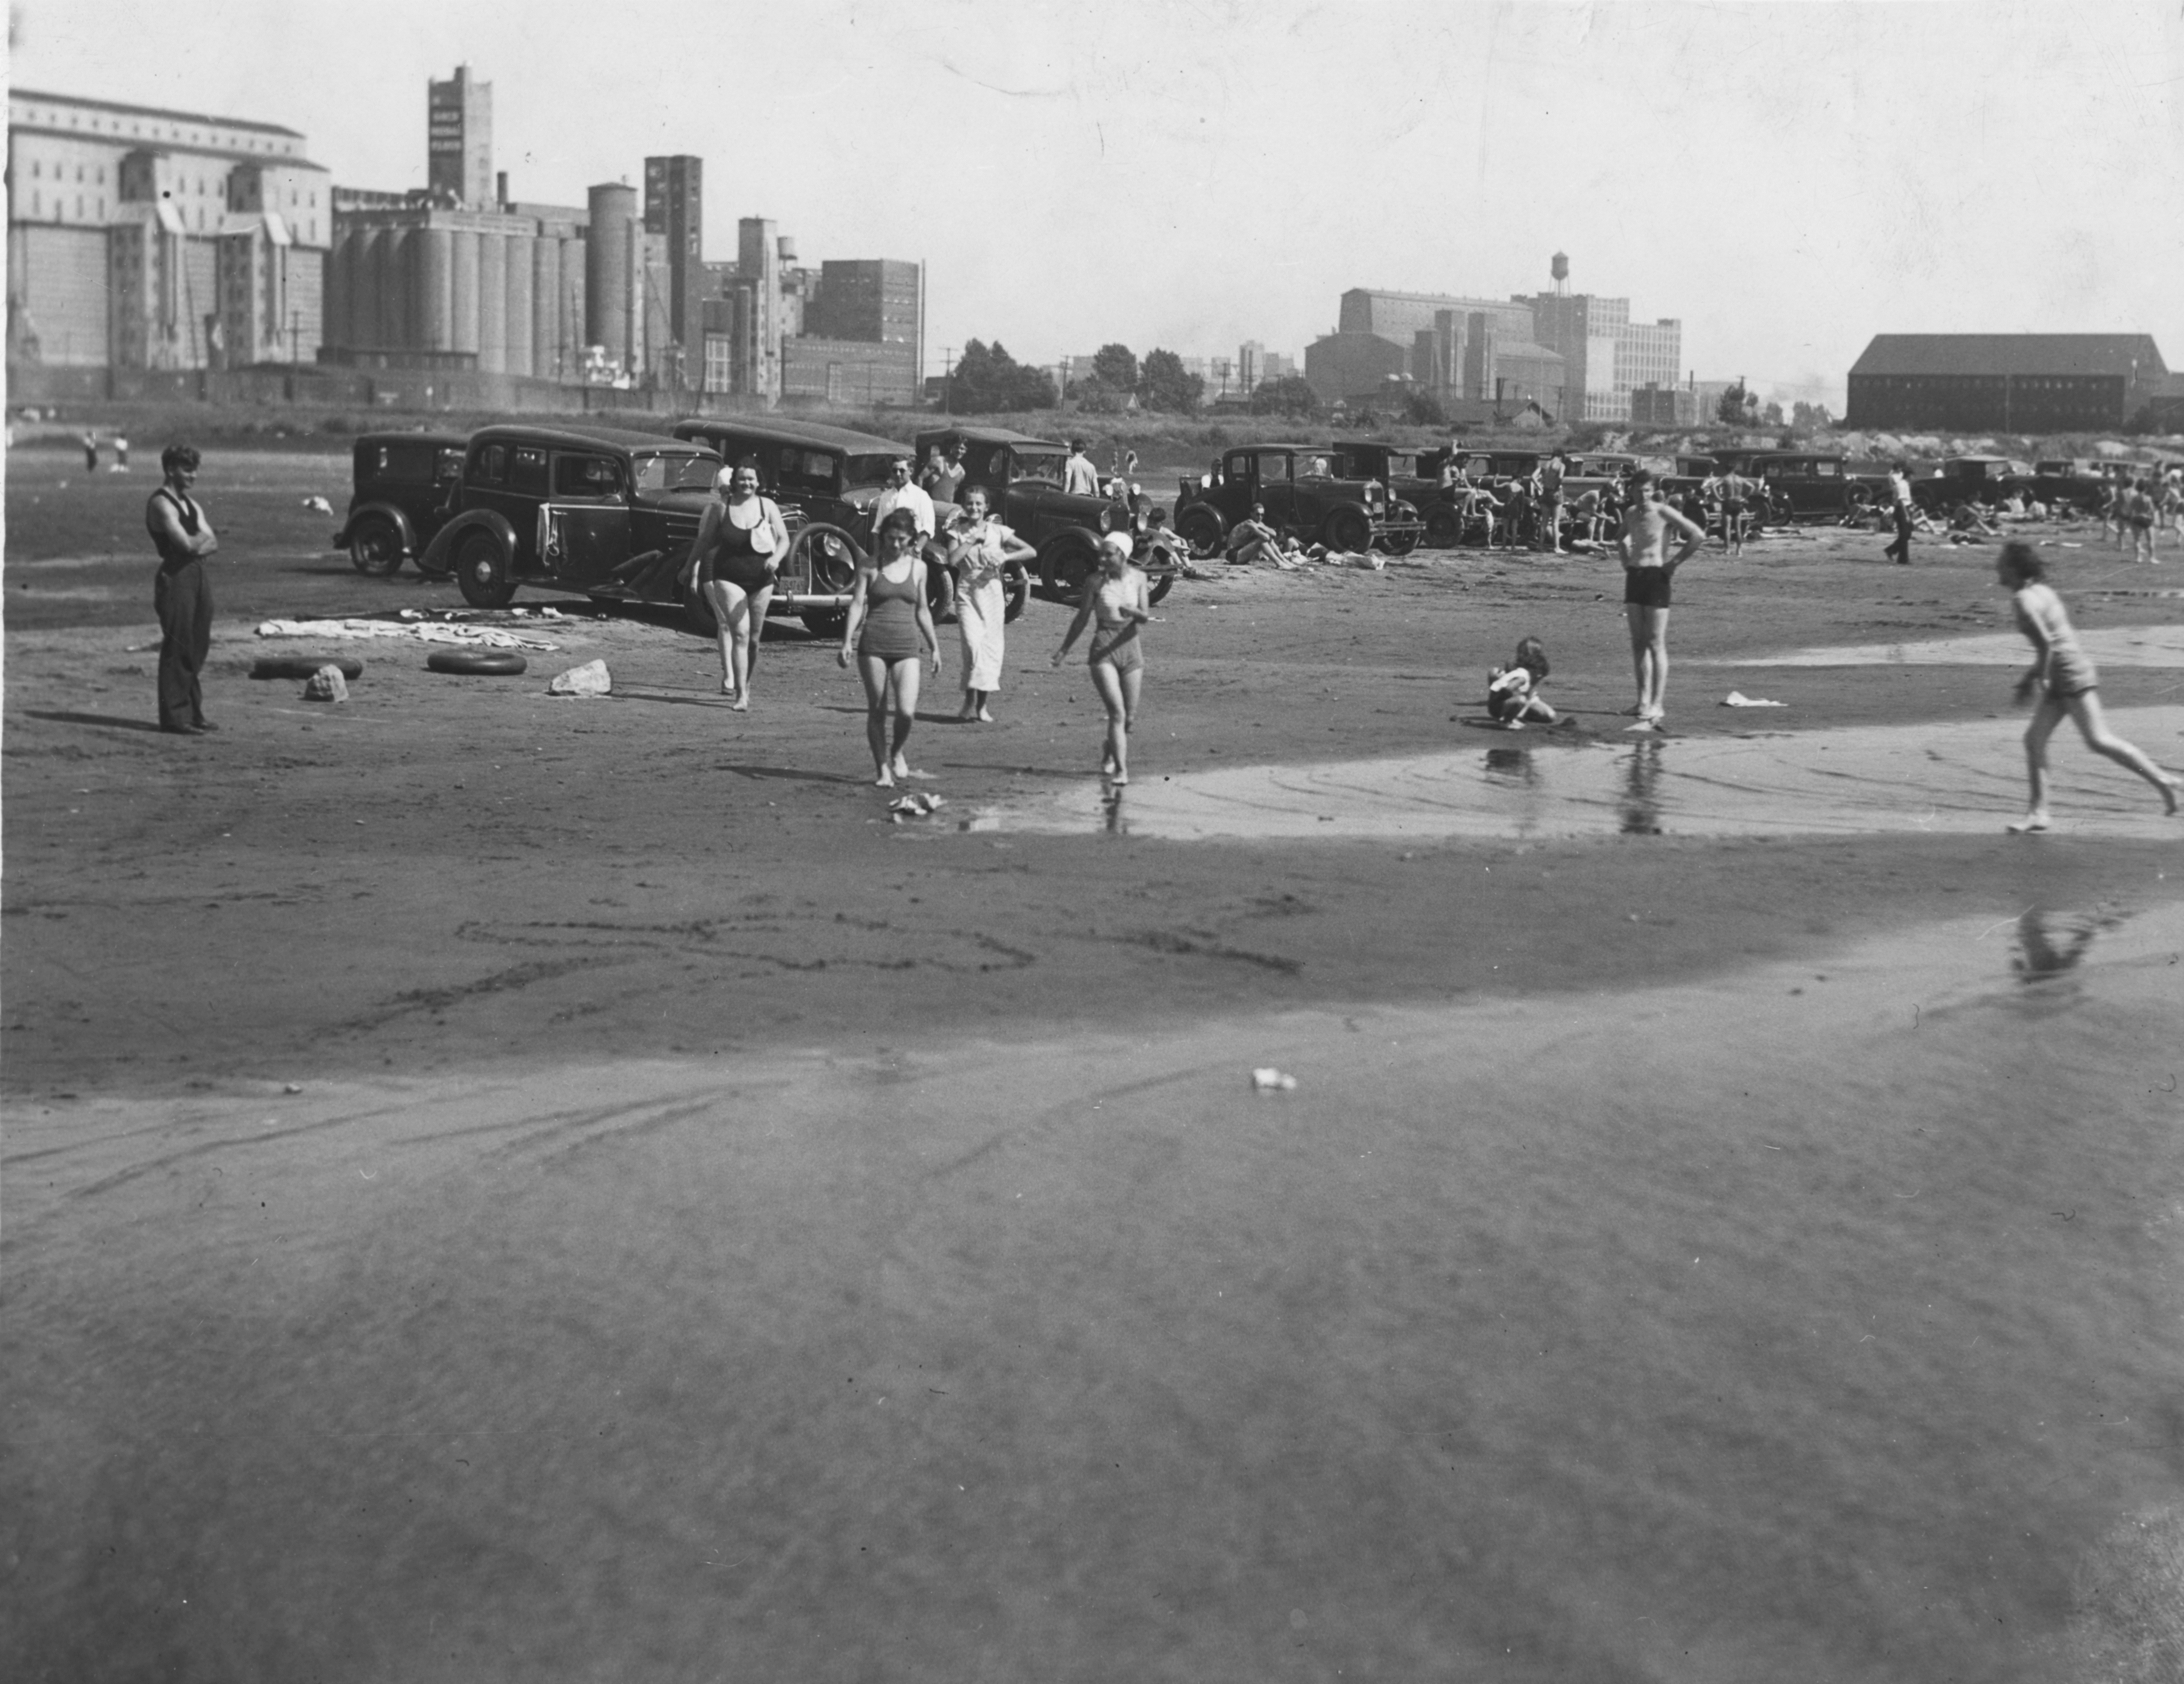 Beachgoers along the shores of Lake Erie were once a common scene at the Outer Harbor. (Photo courtesy of the Wilbur Porterfield Collection, Buffalo History Museum)